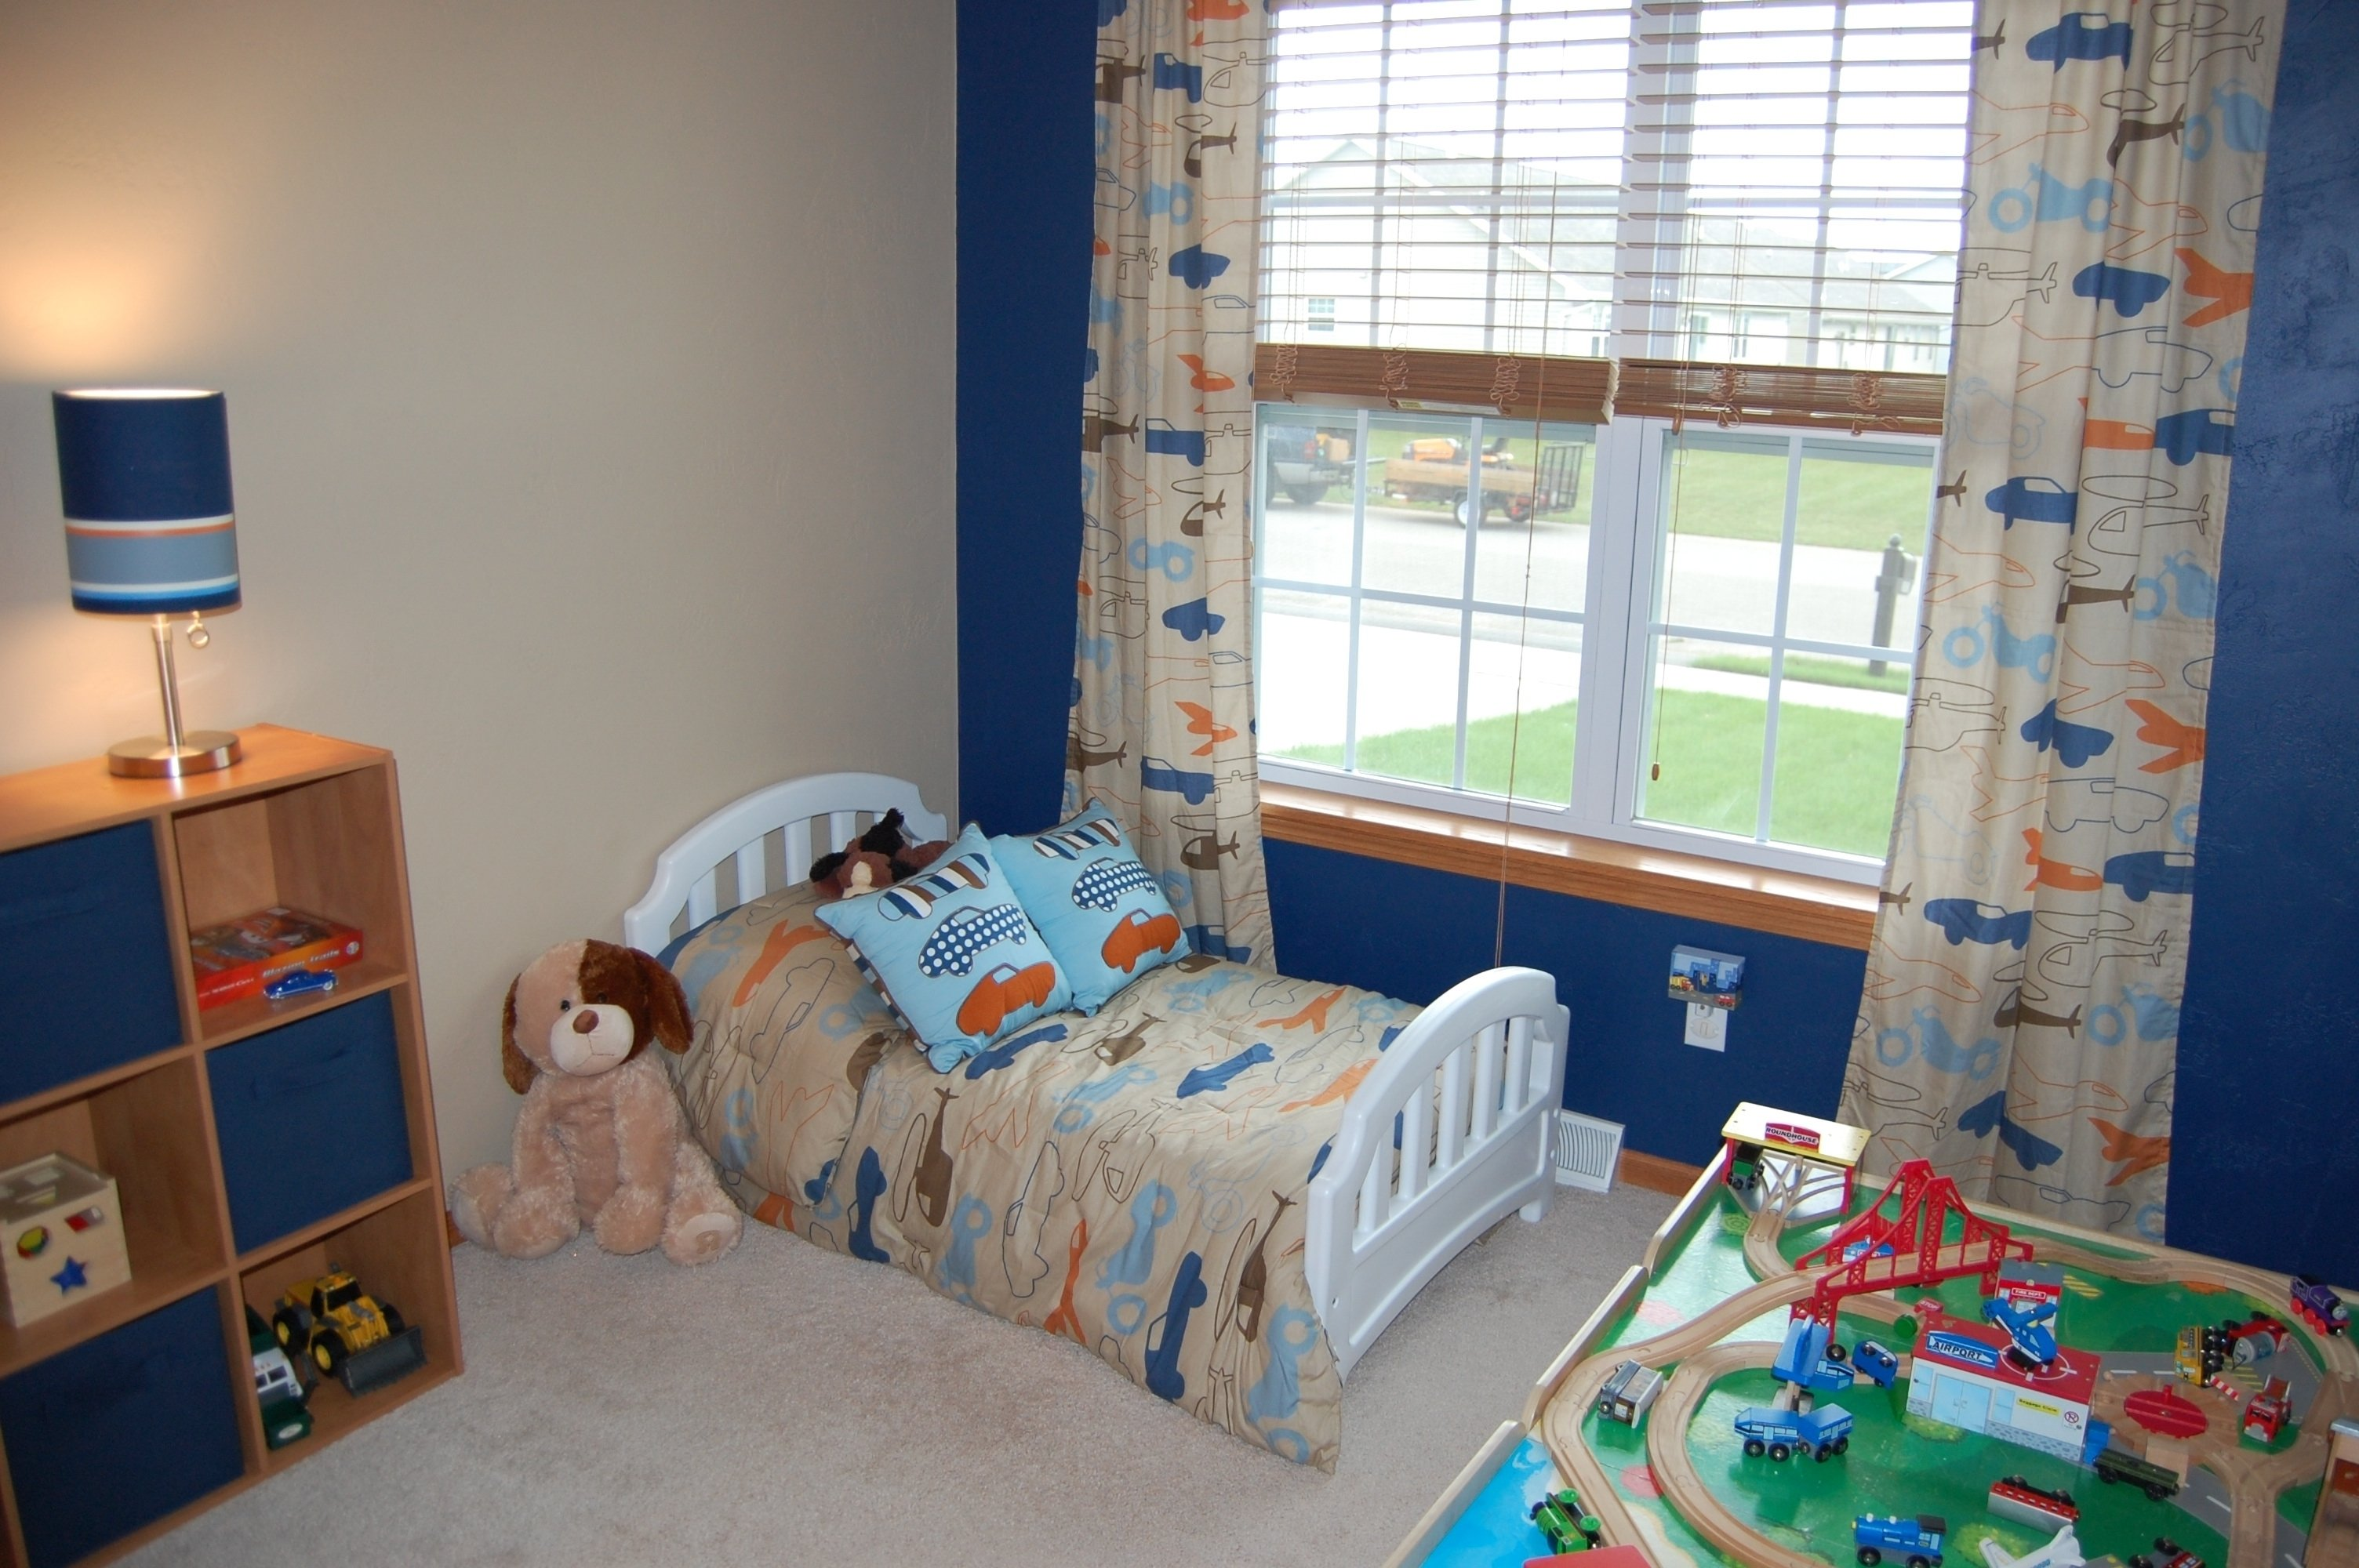 10 Nice Toddler Boy Room Decorating Ideas little boys bedroom ideas toddler boy room decorating ideas home